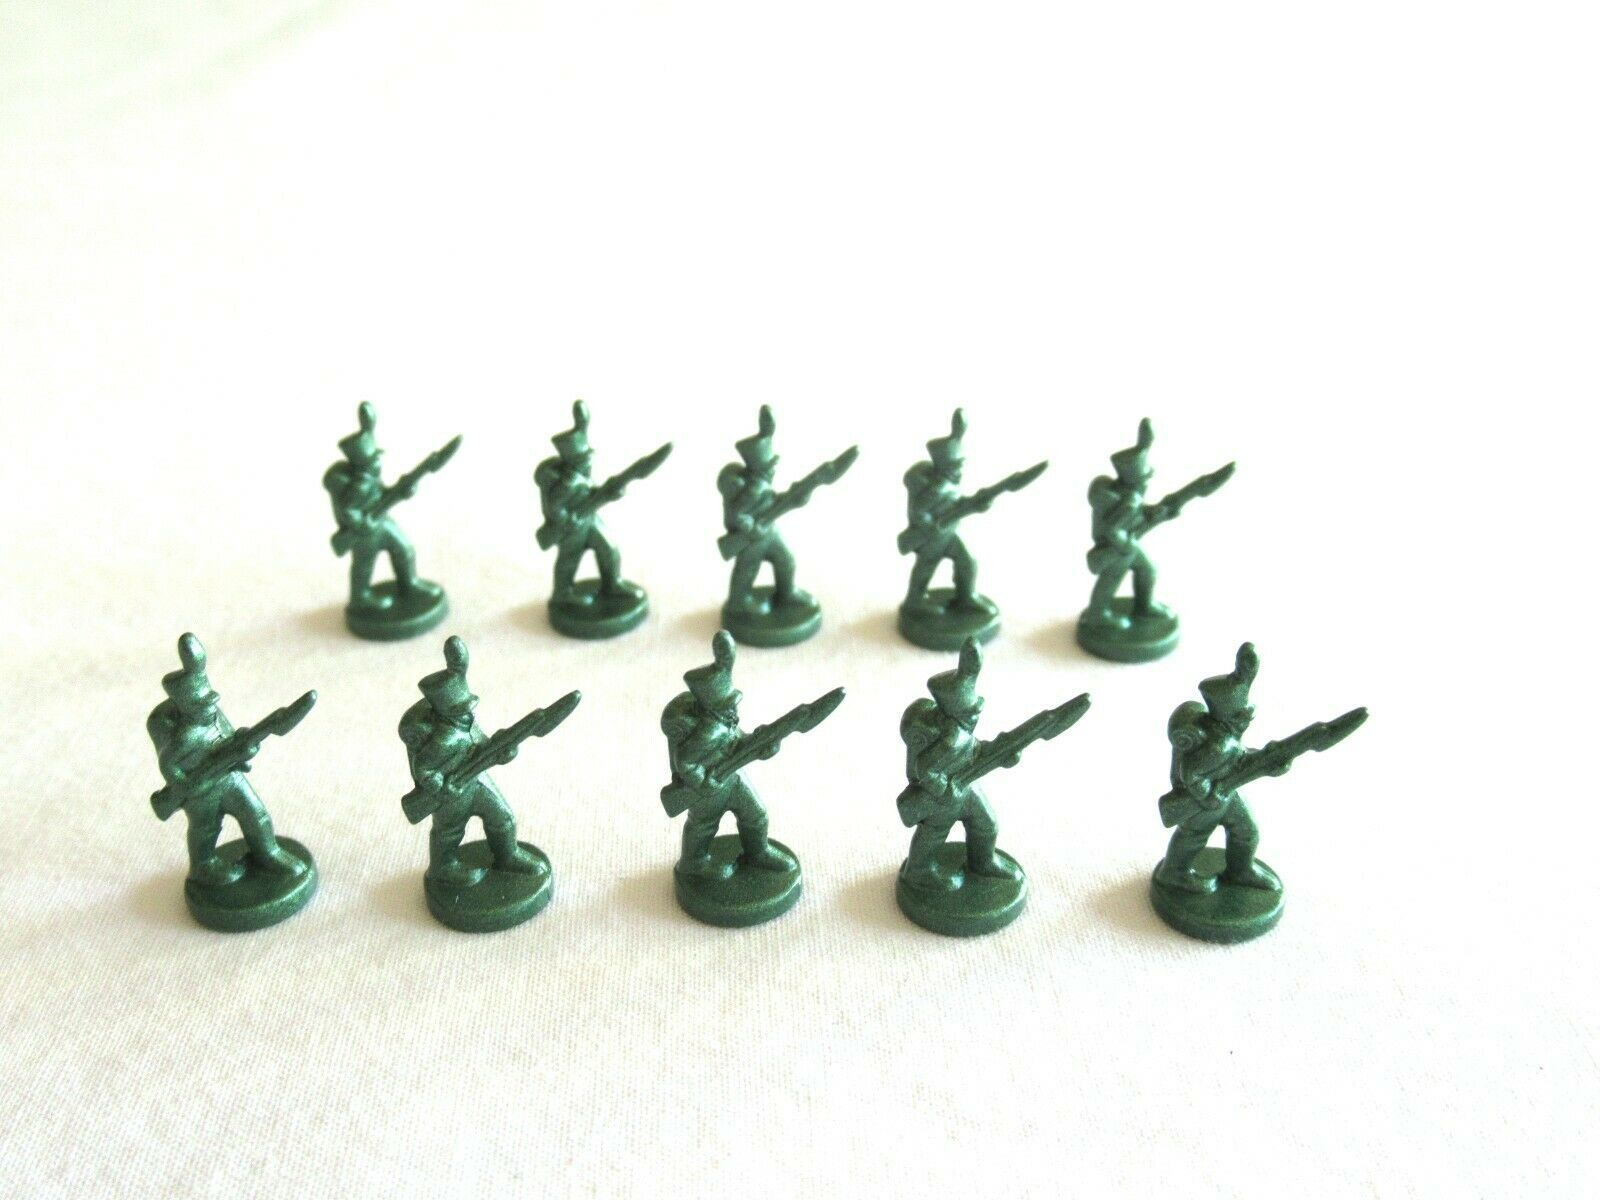 Primary image for 10x Risk 40th Anniversary Edition Board Game Metal Soldier Infantry Green Army